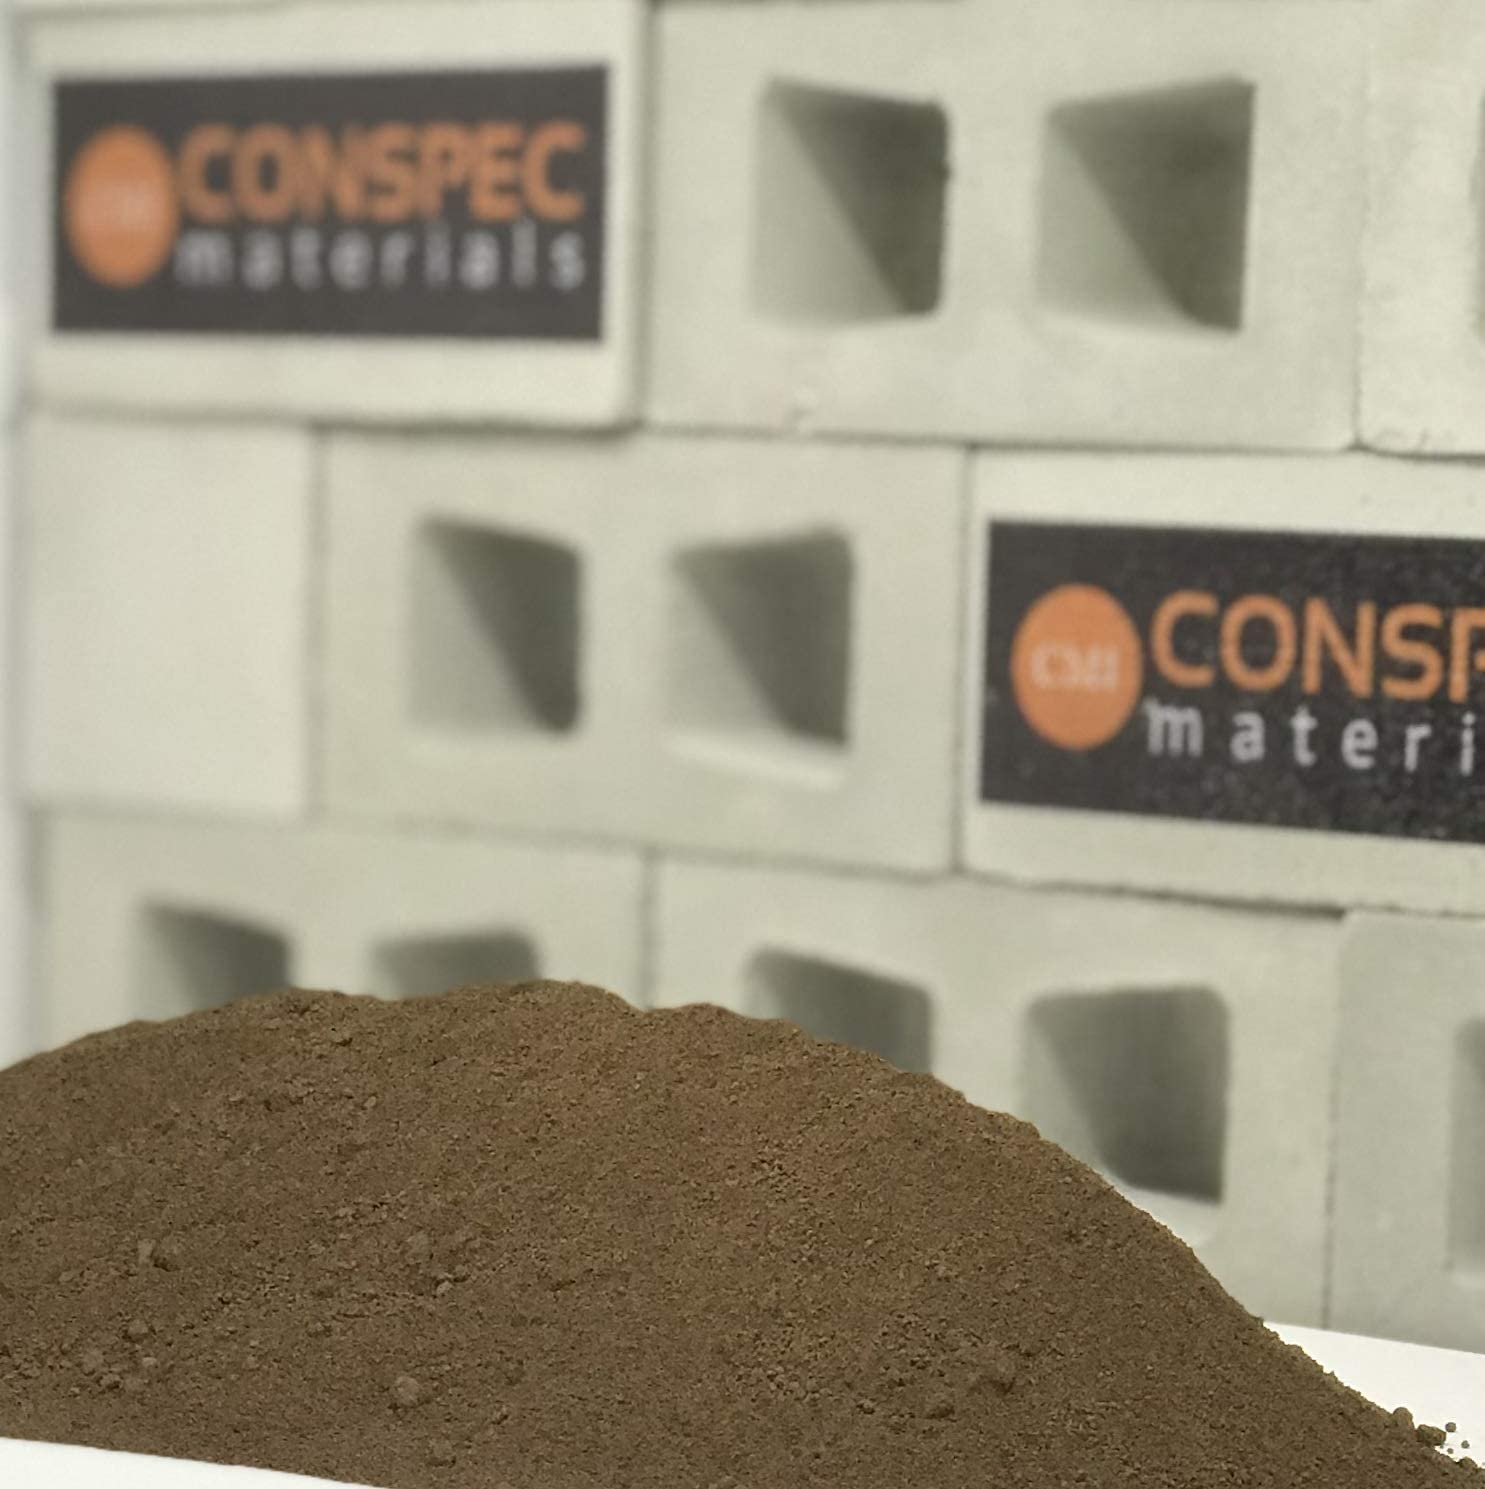 Conspec 1 Recommendation Lbs. Chocolate Brown Concrete Large special price !! Color for Ceme Powdered